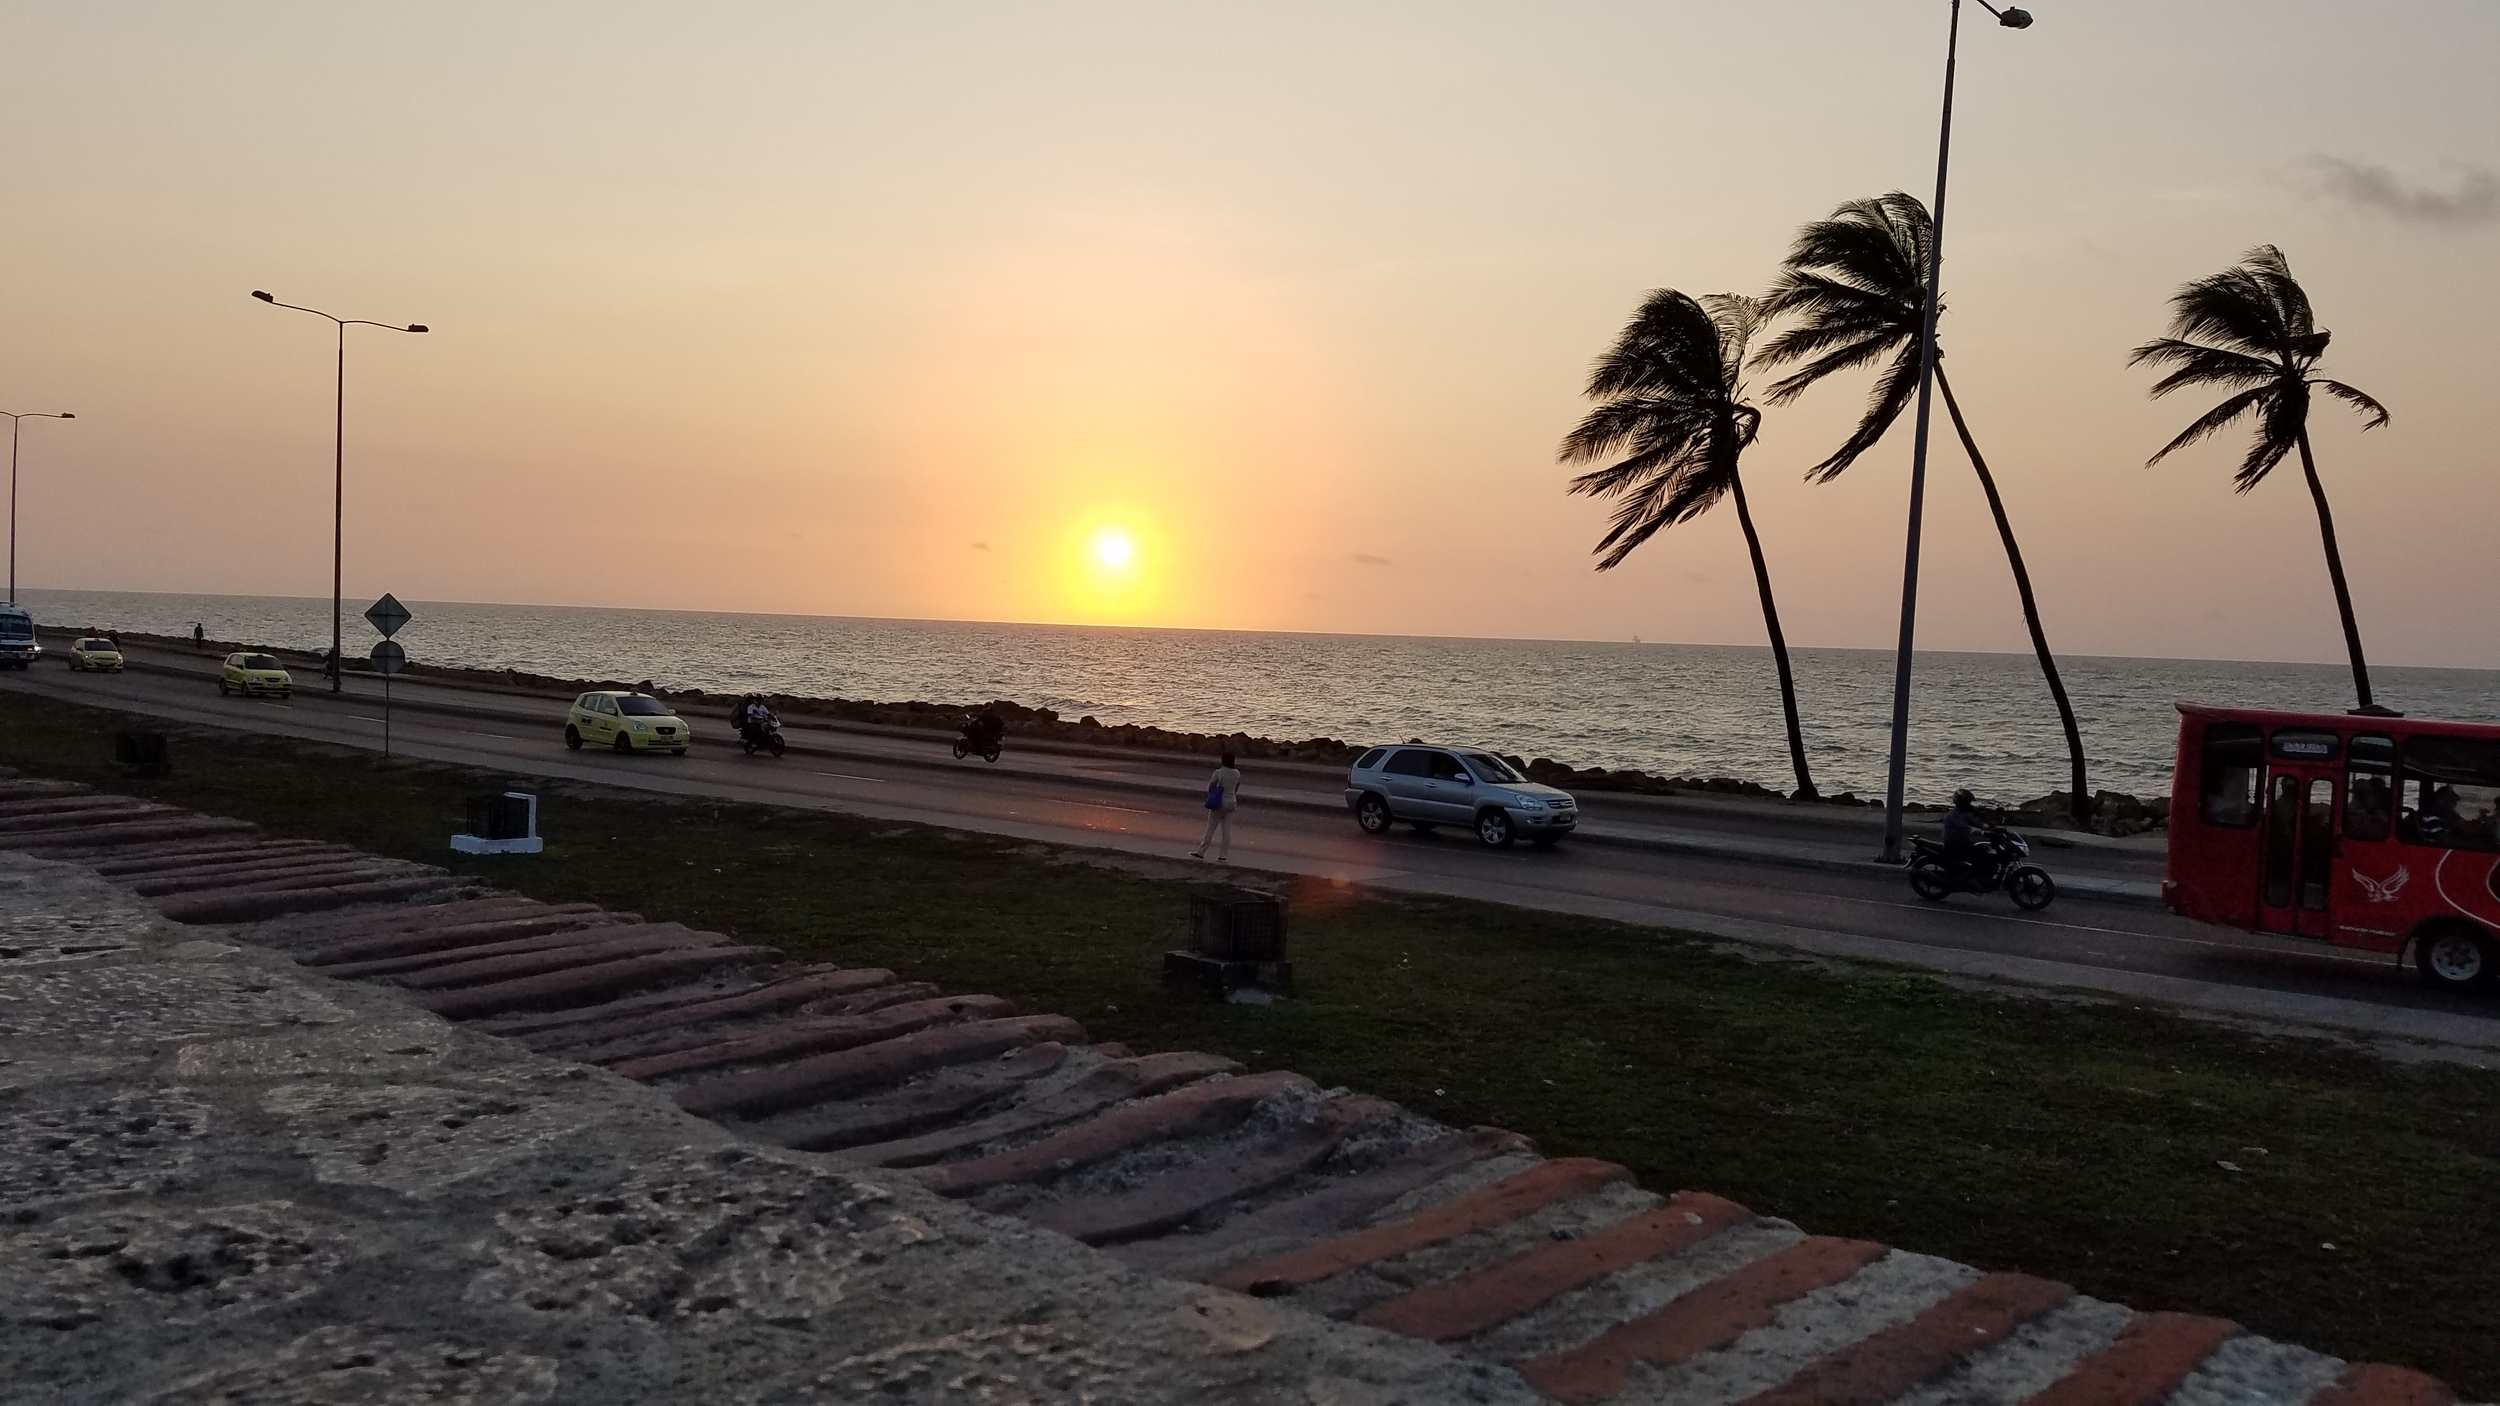 Sunset In Cartagena